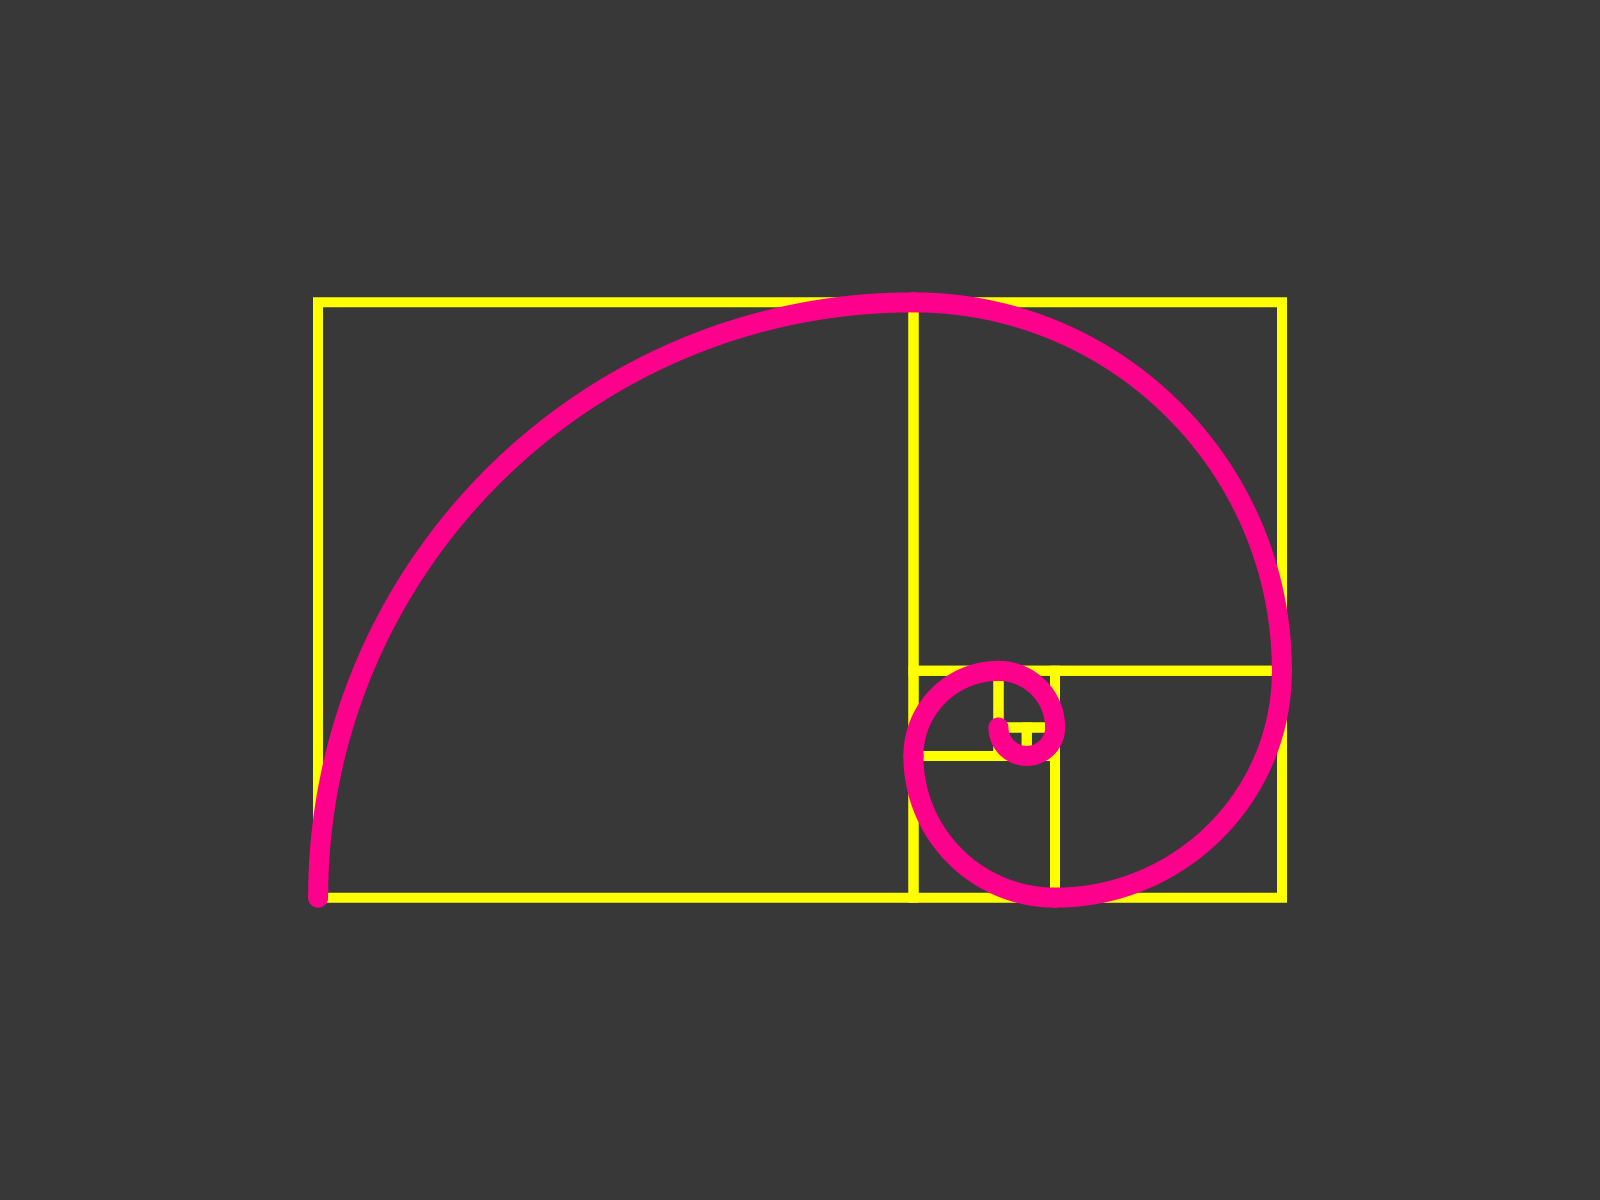 golden-ratio-cover